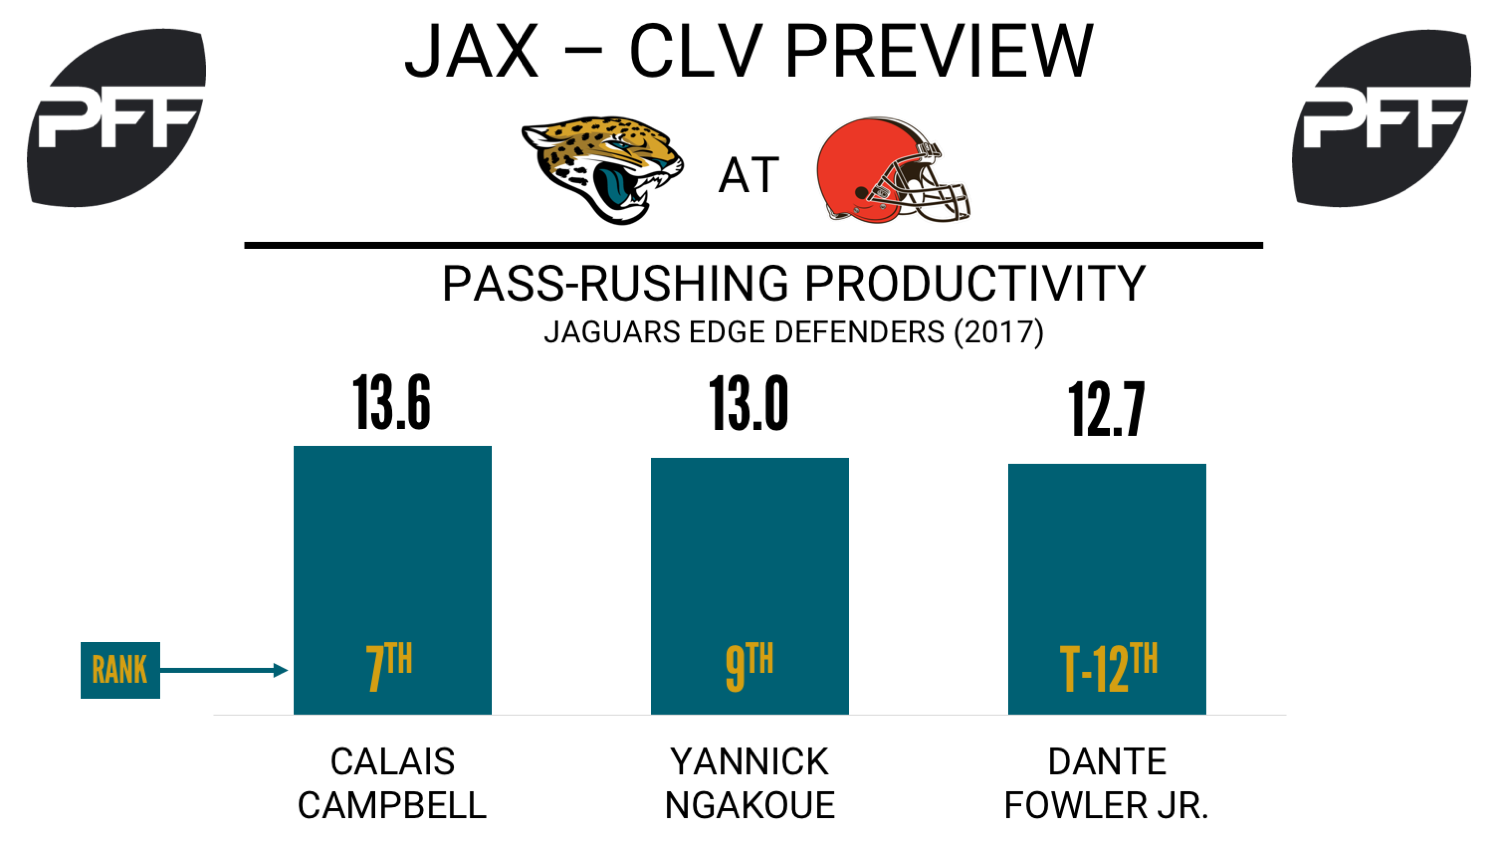 Jacksonville Jaguars, edge defender, pass rushing productivity